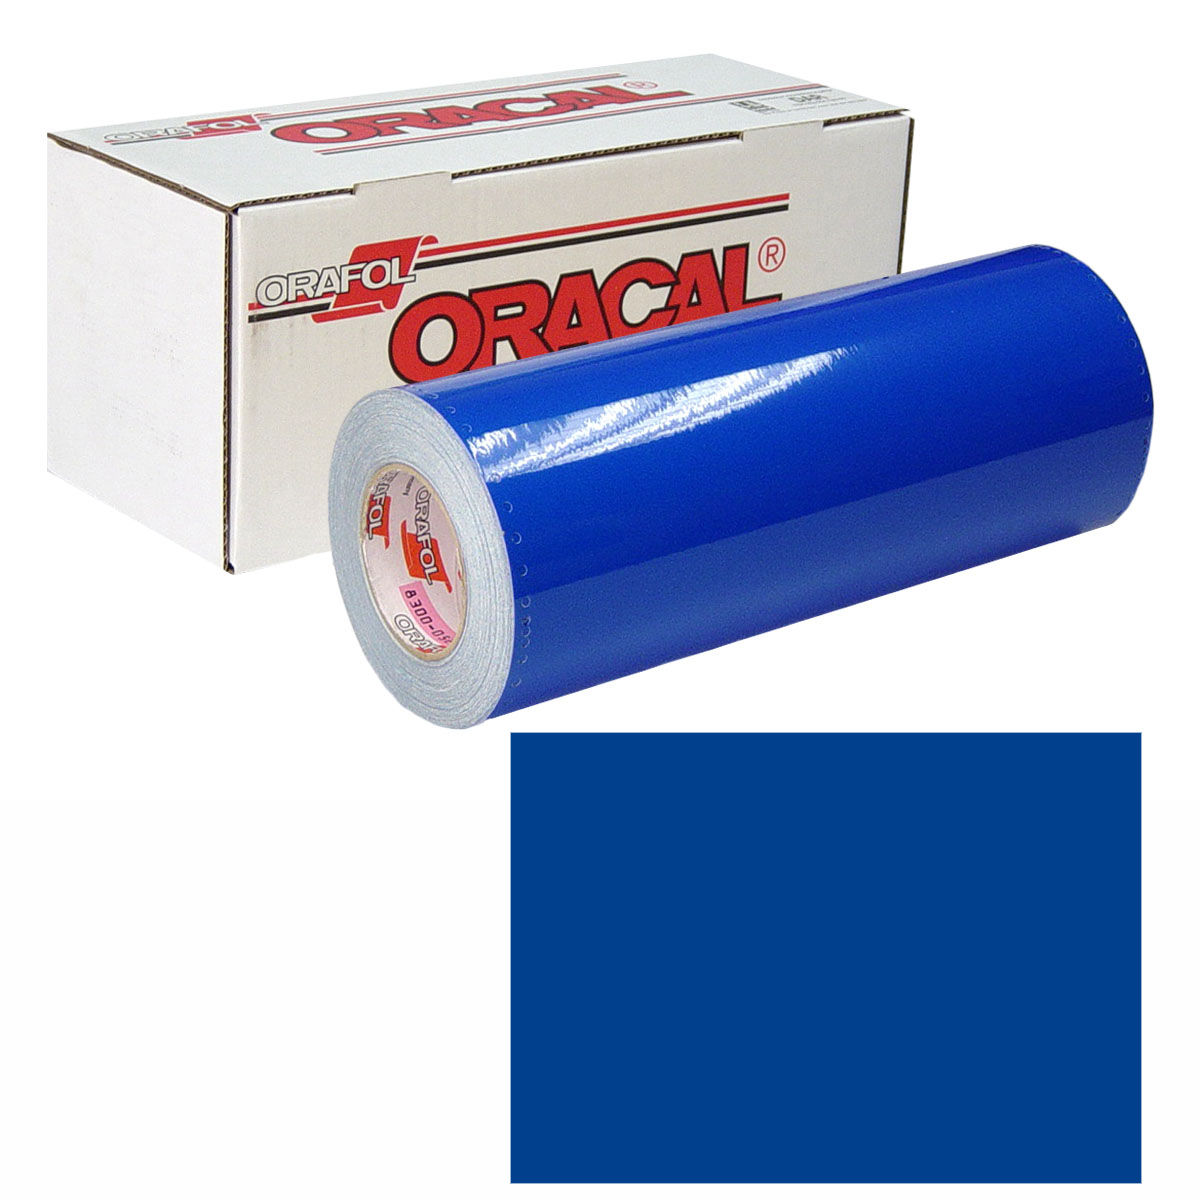 ORACAL 631 Unp 24in X 50yd 057 Traffic Blue